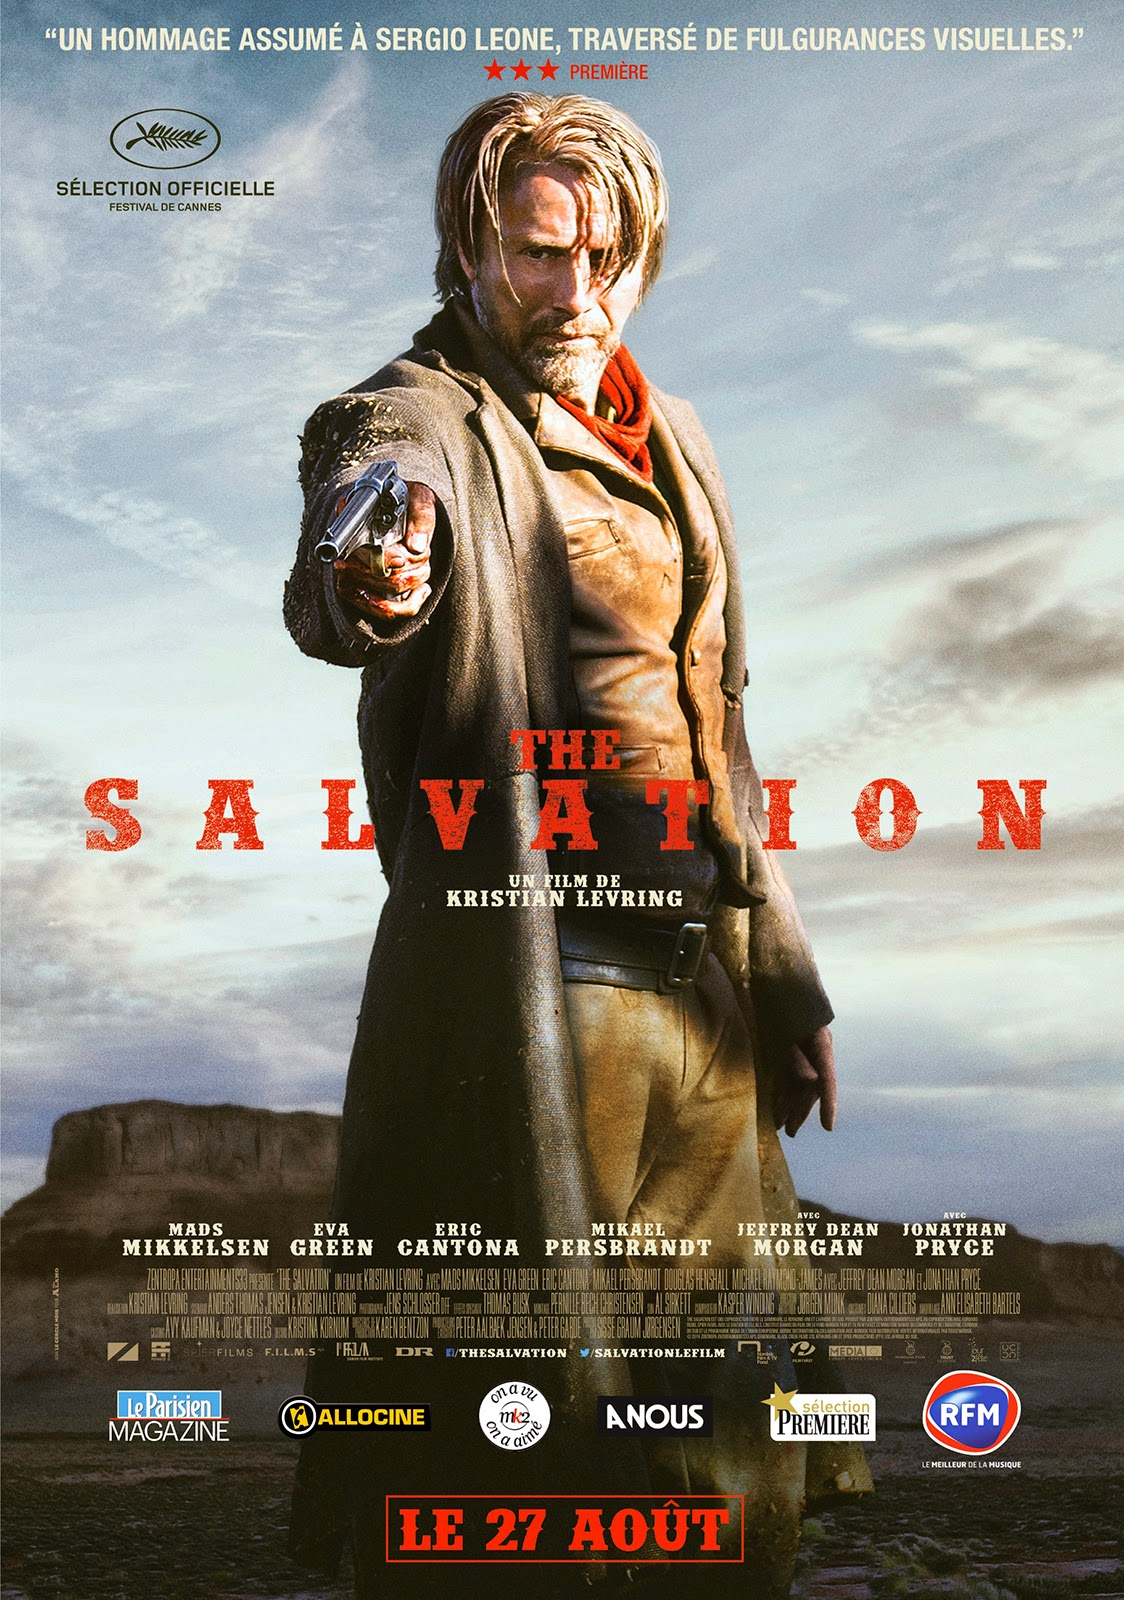 http://fuckingcinephiles.blogspot.fr/2014/08/critique-salvation.html